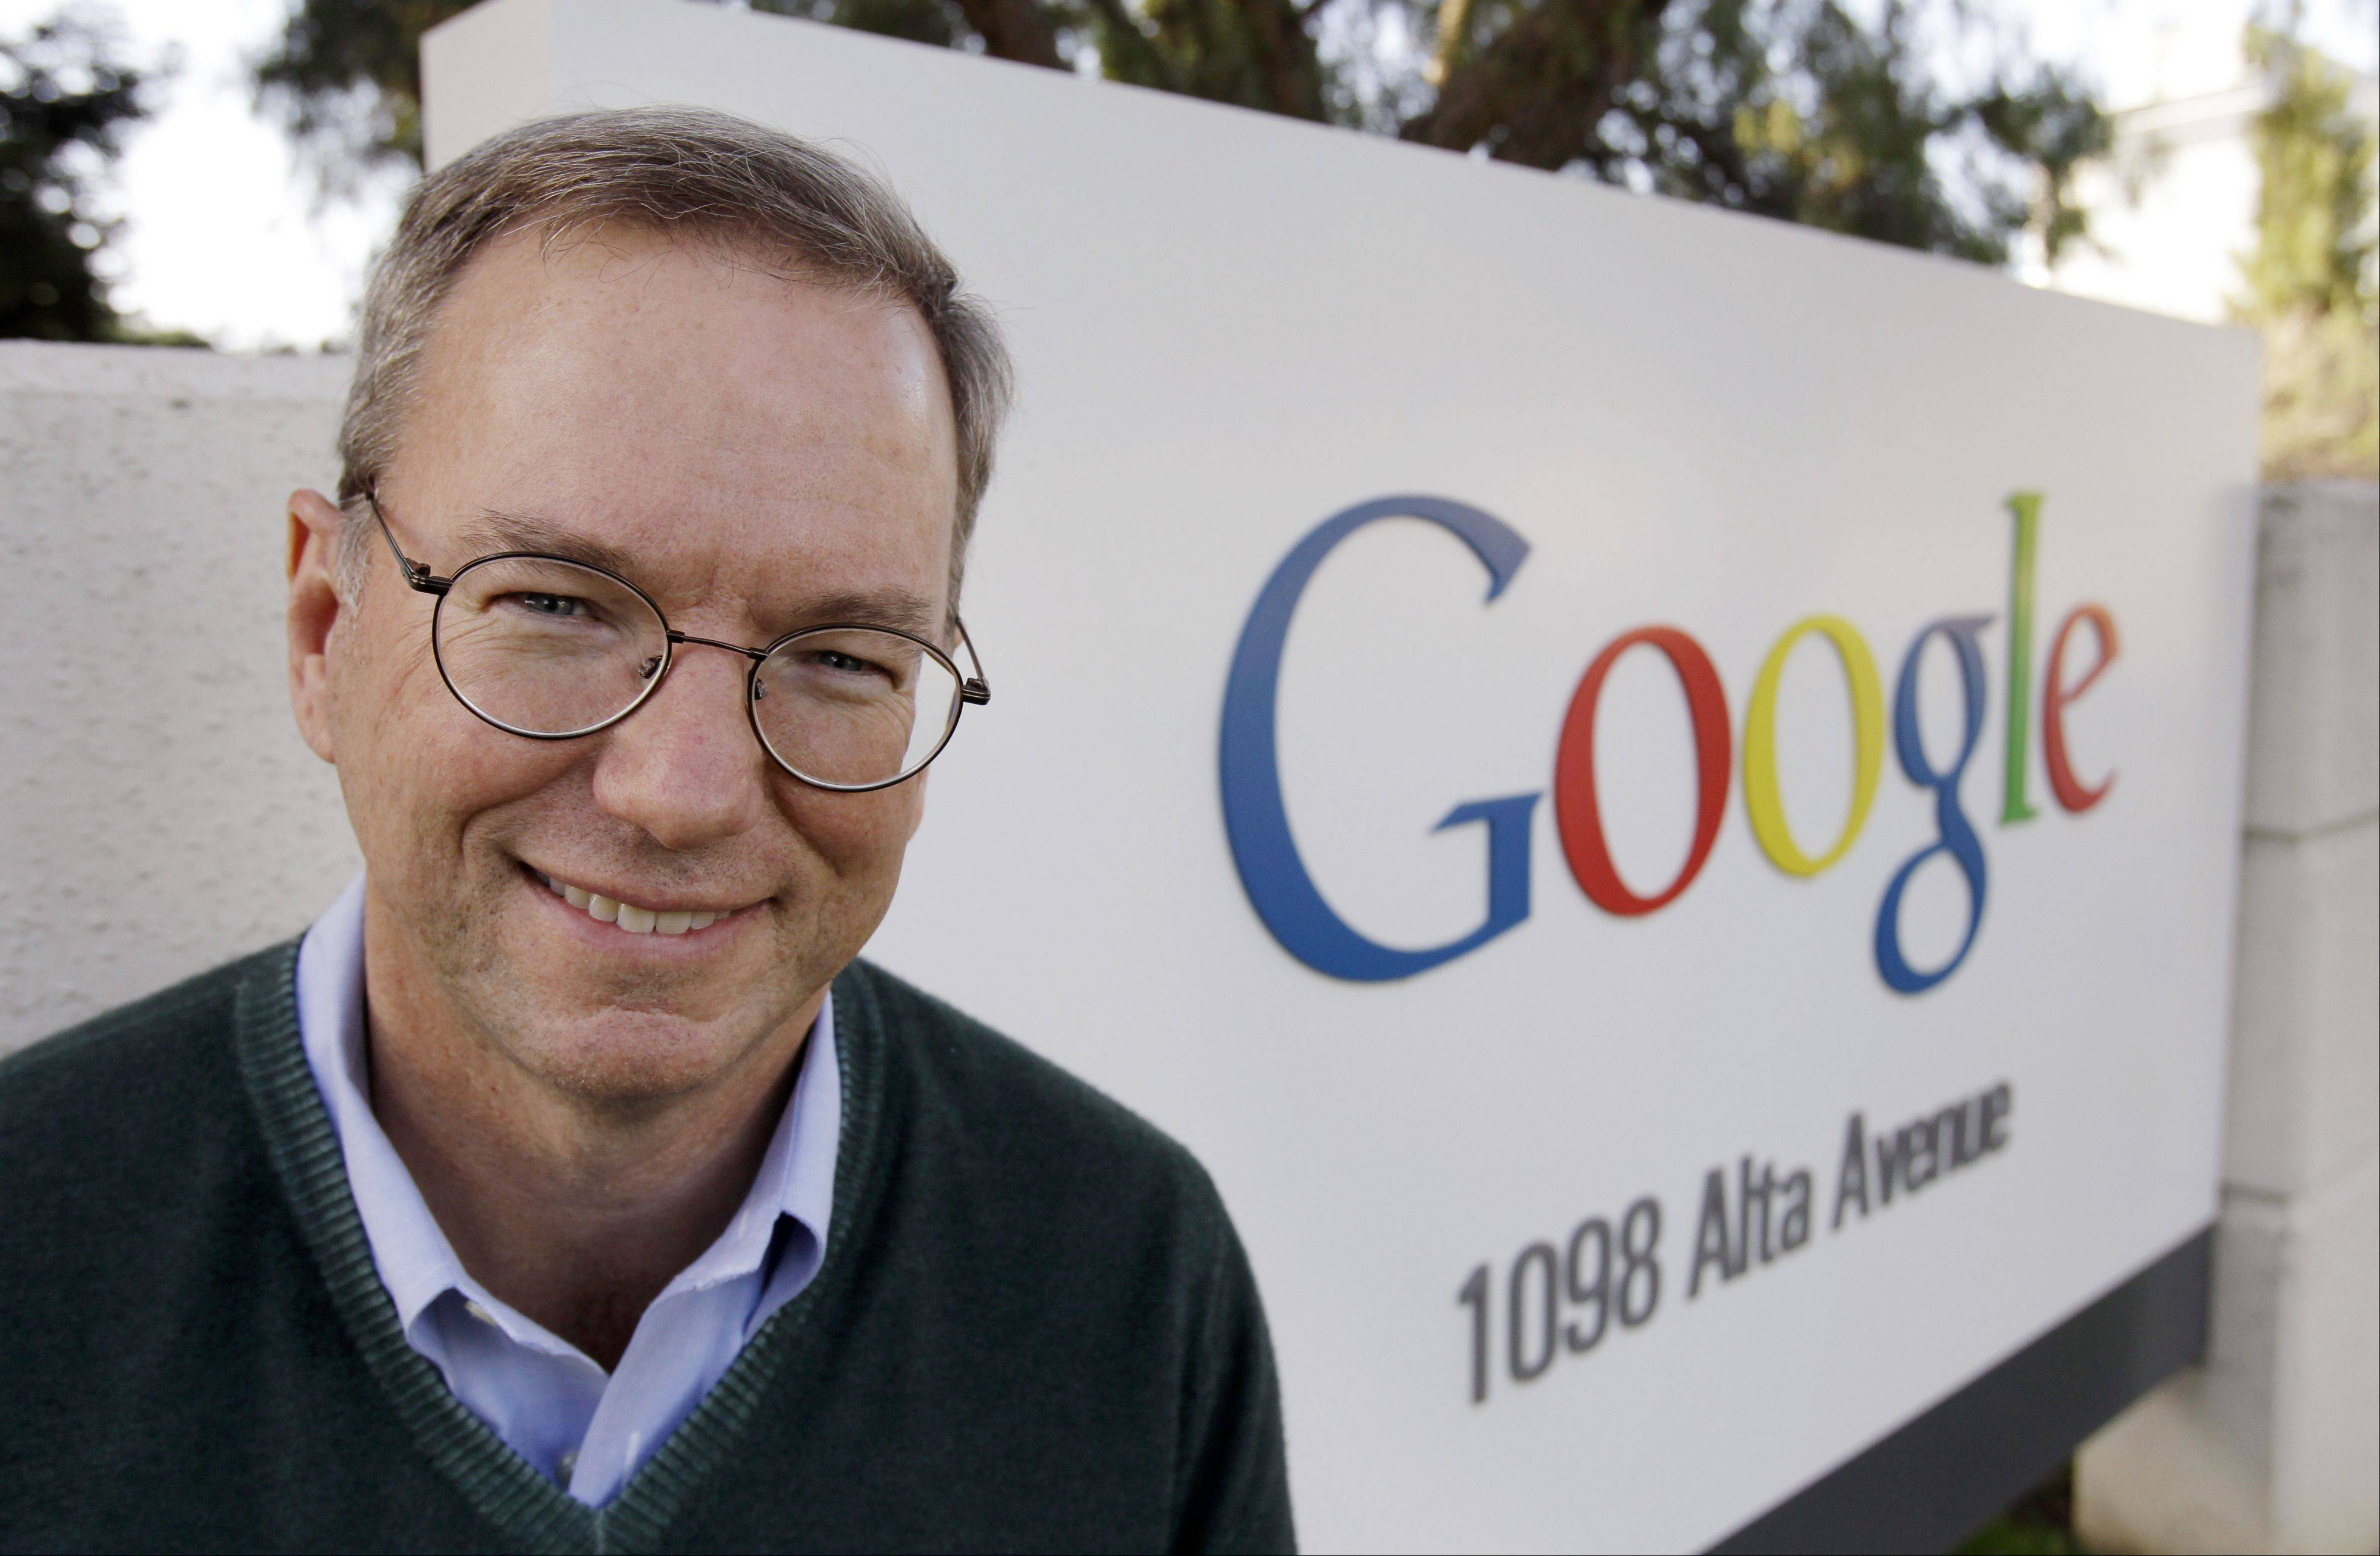 Google paying bonuses totaling $15M to 4 top execs